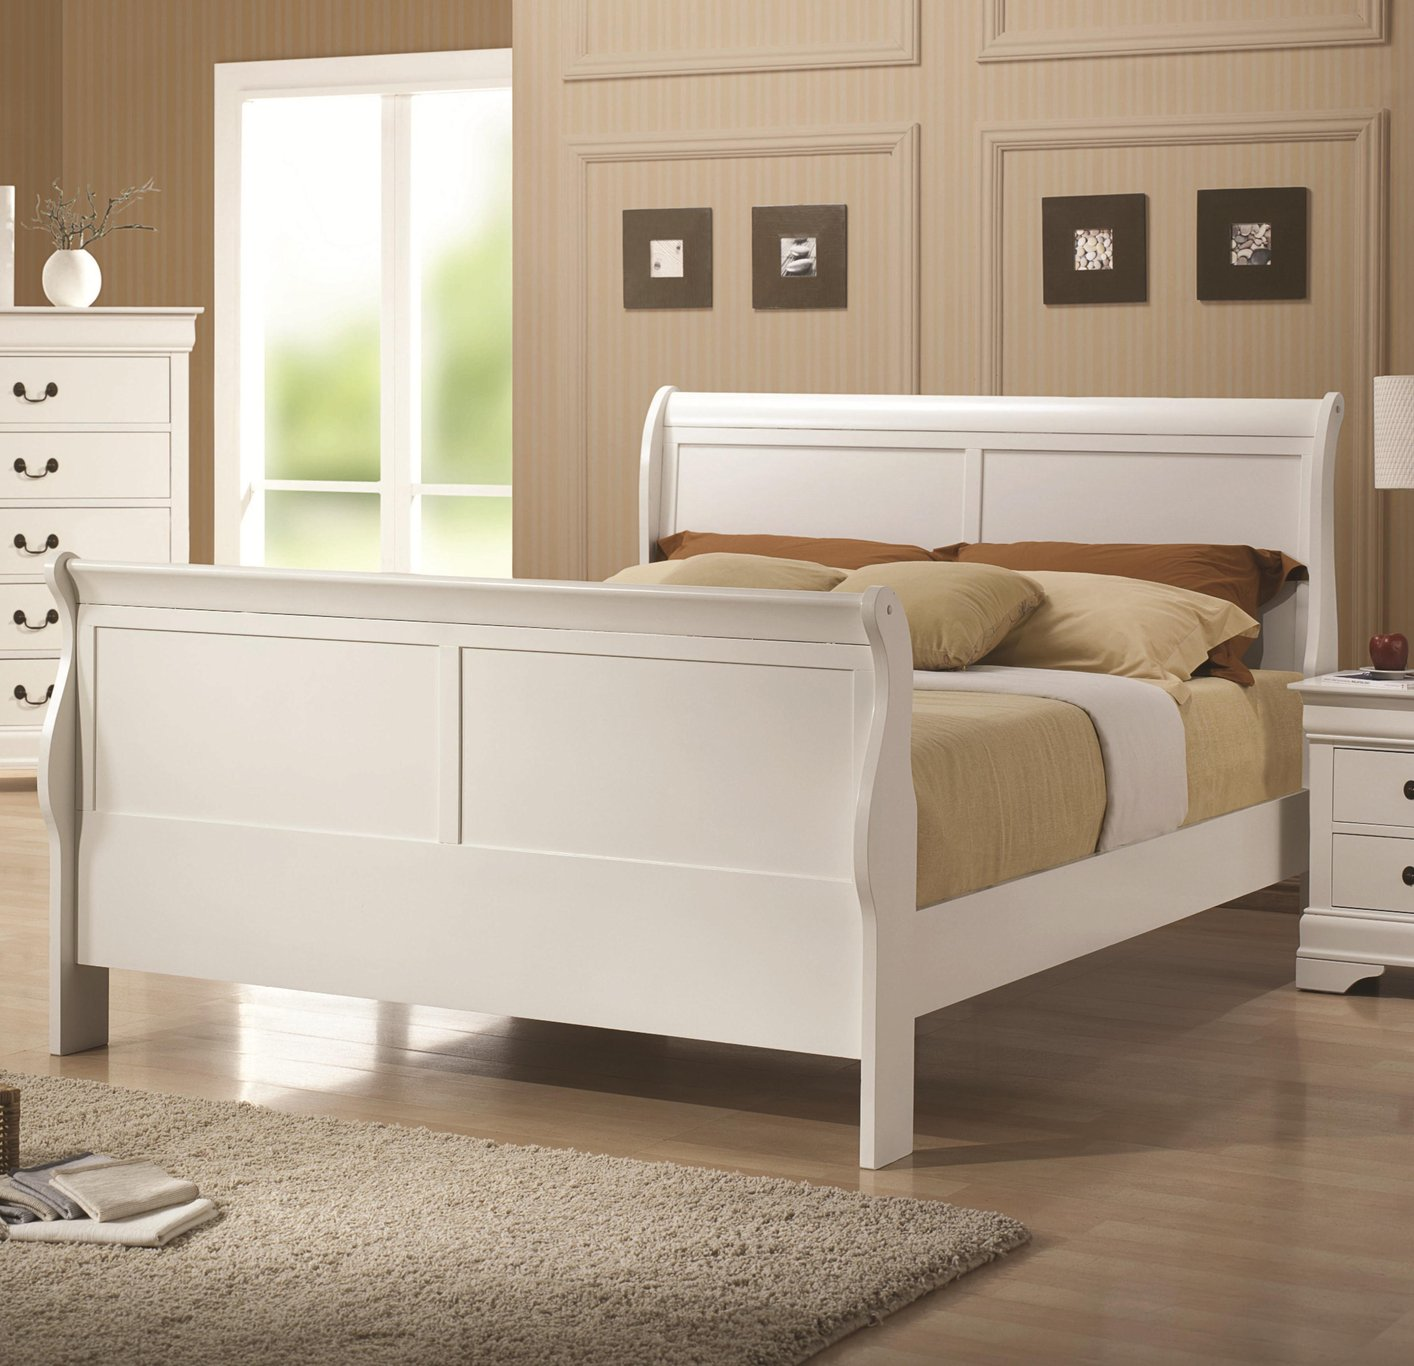 White Wood Twin Size Bed  StealASofa Furniture Outlet